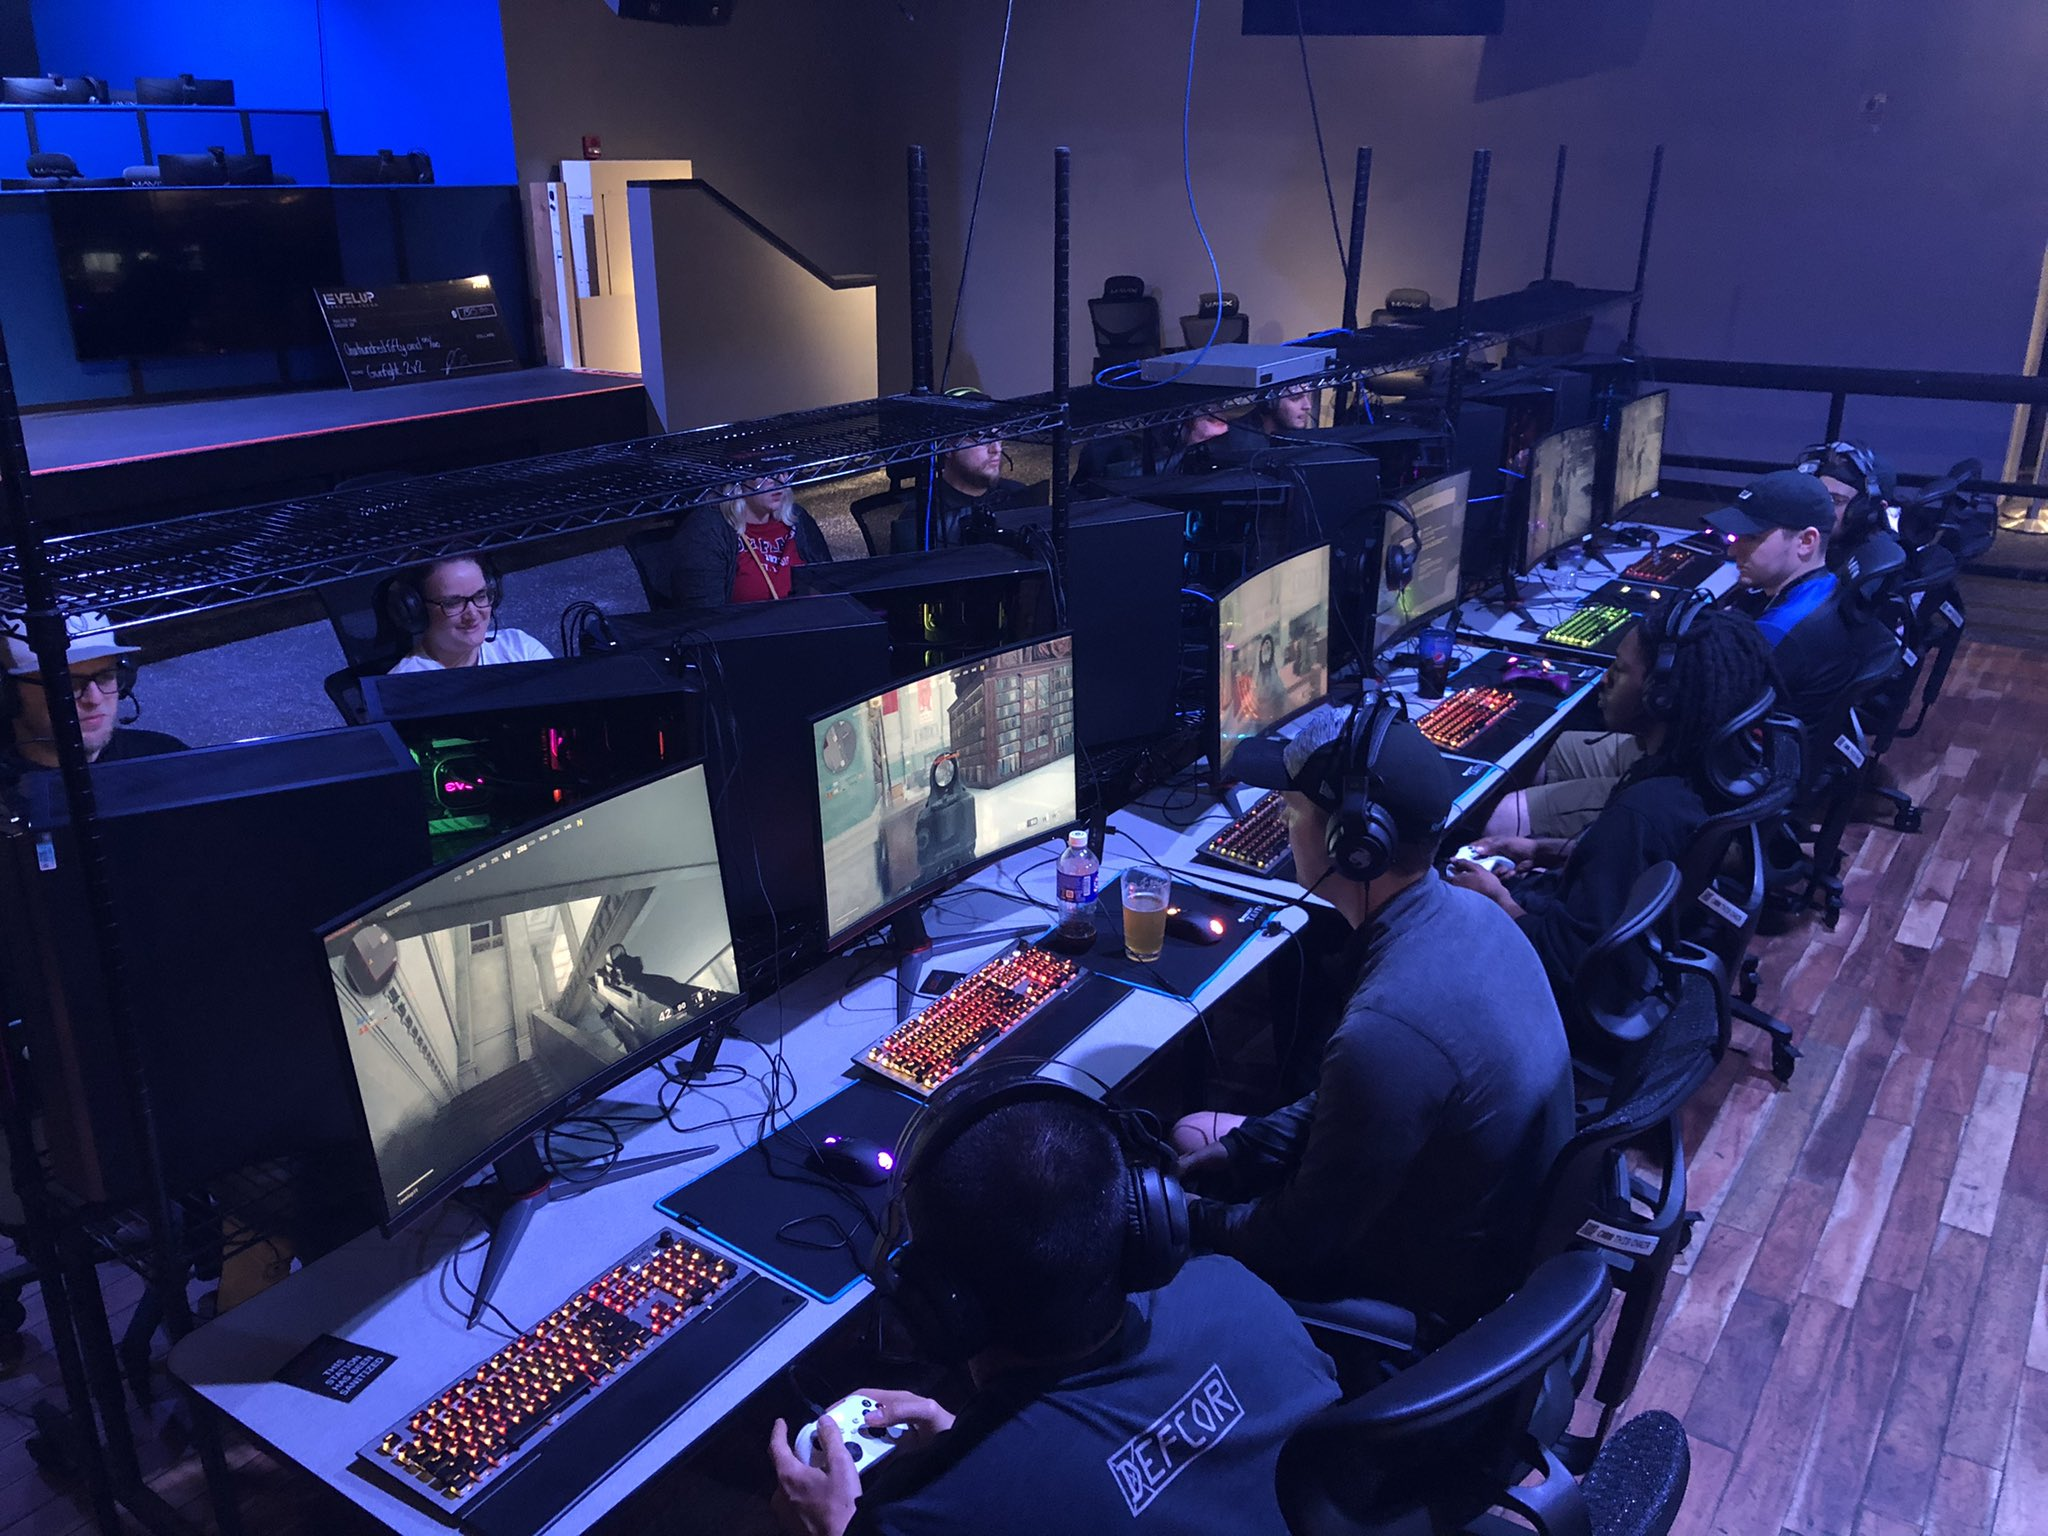 LEVELUP is open for casual or professional gamers